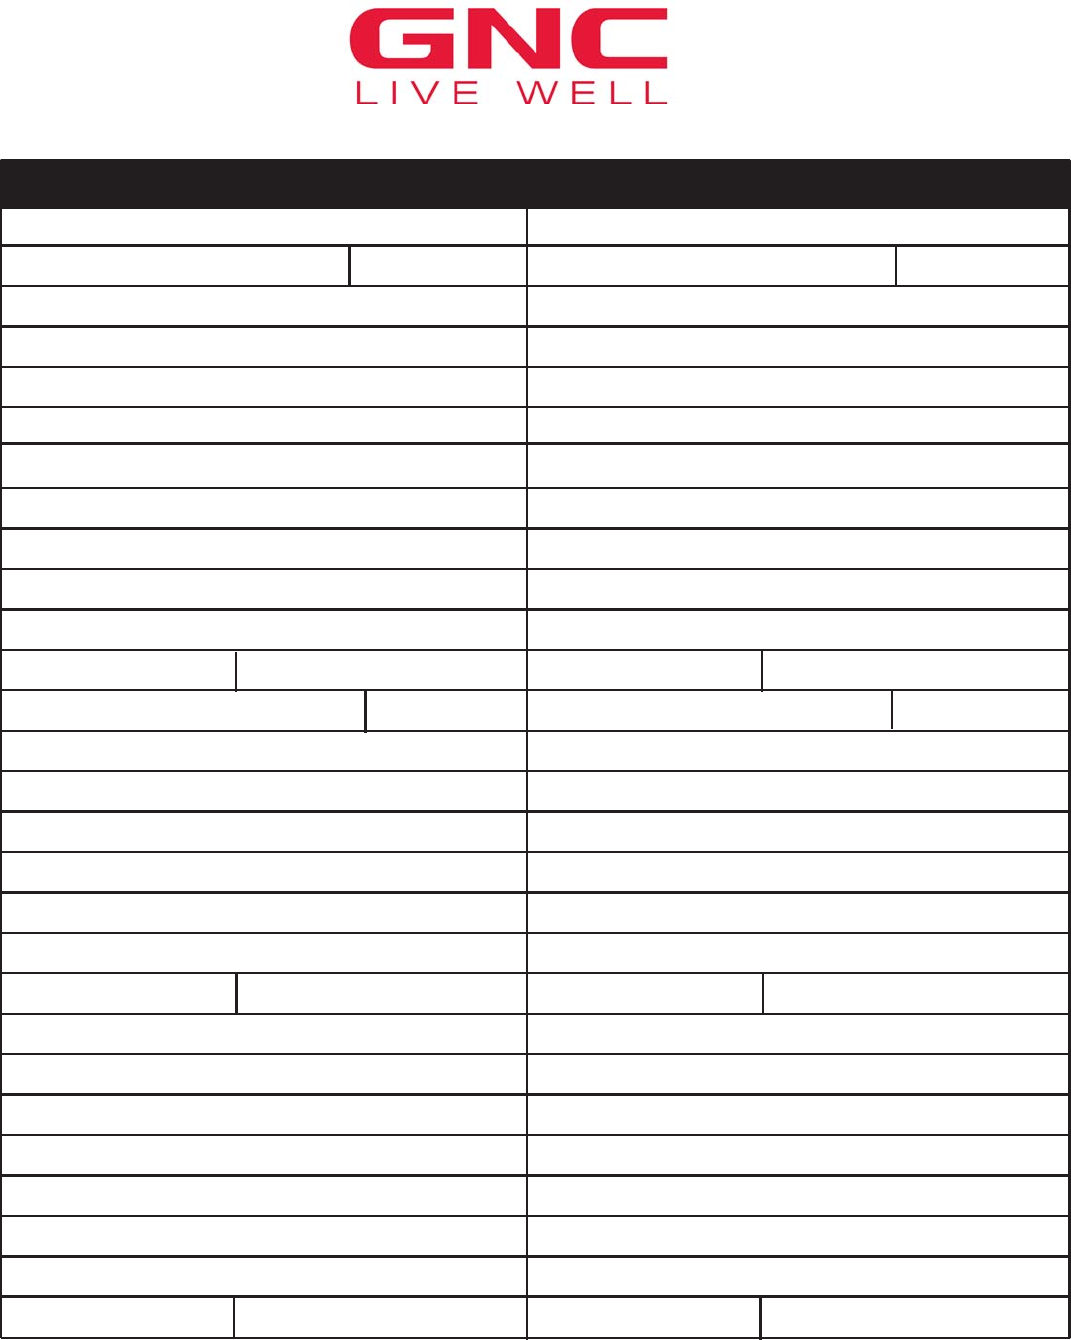 free printable gnc job application form page 5